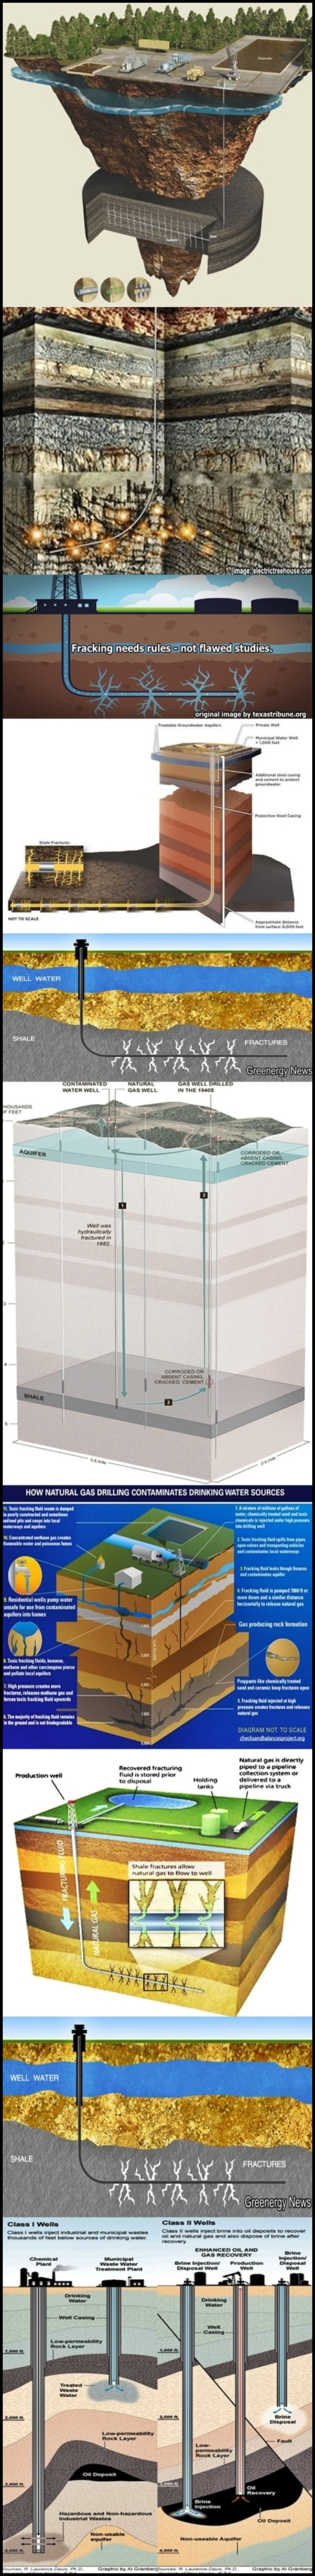 Fracking explained in diagrams